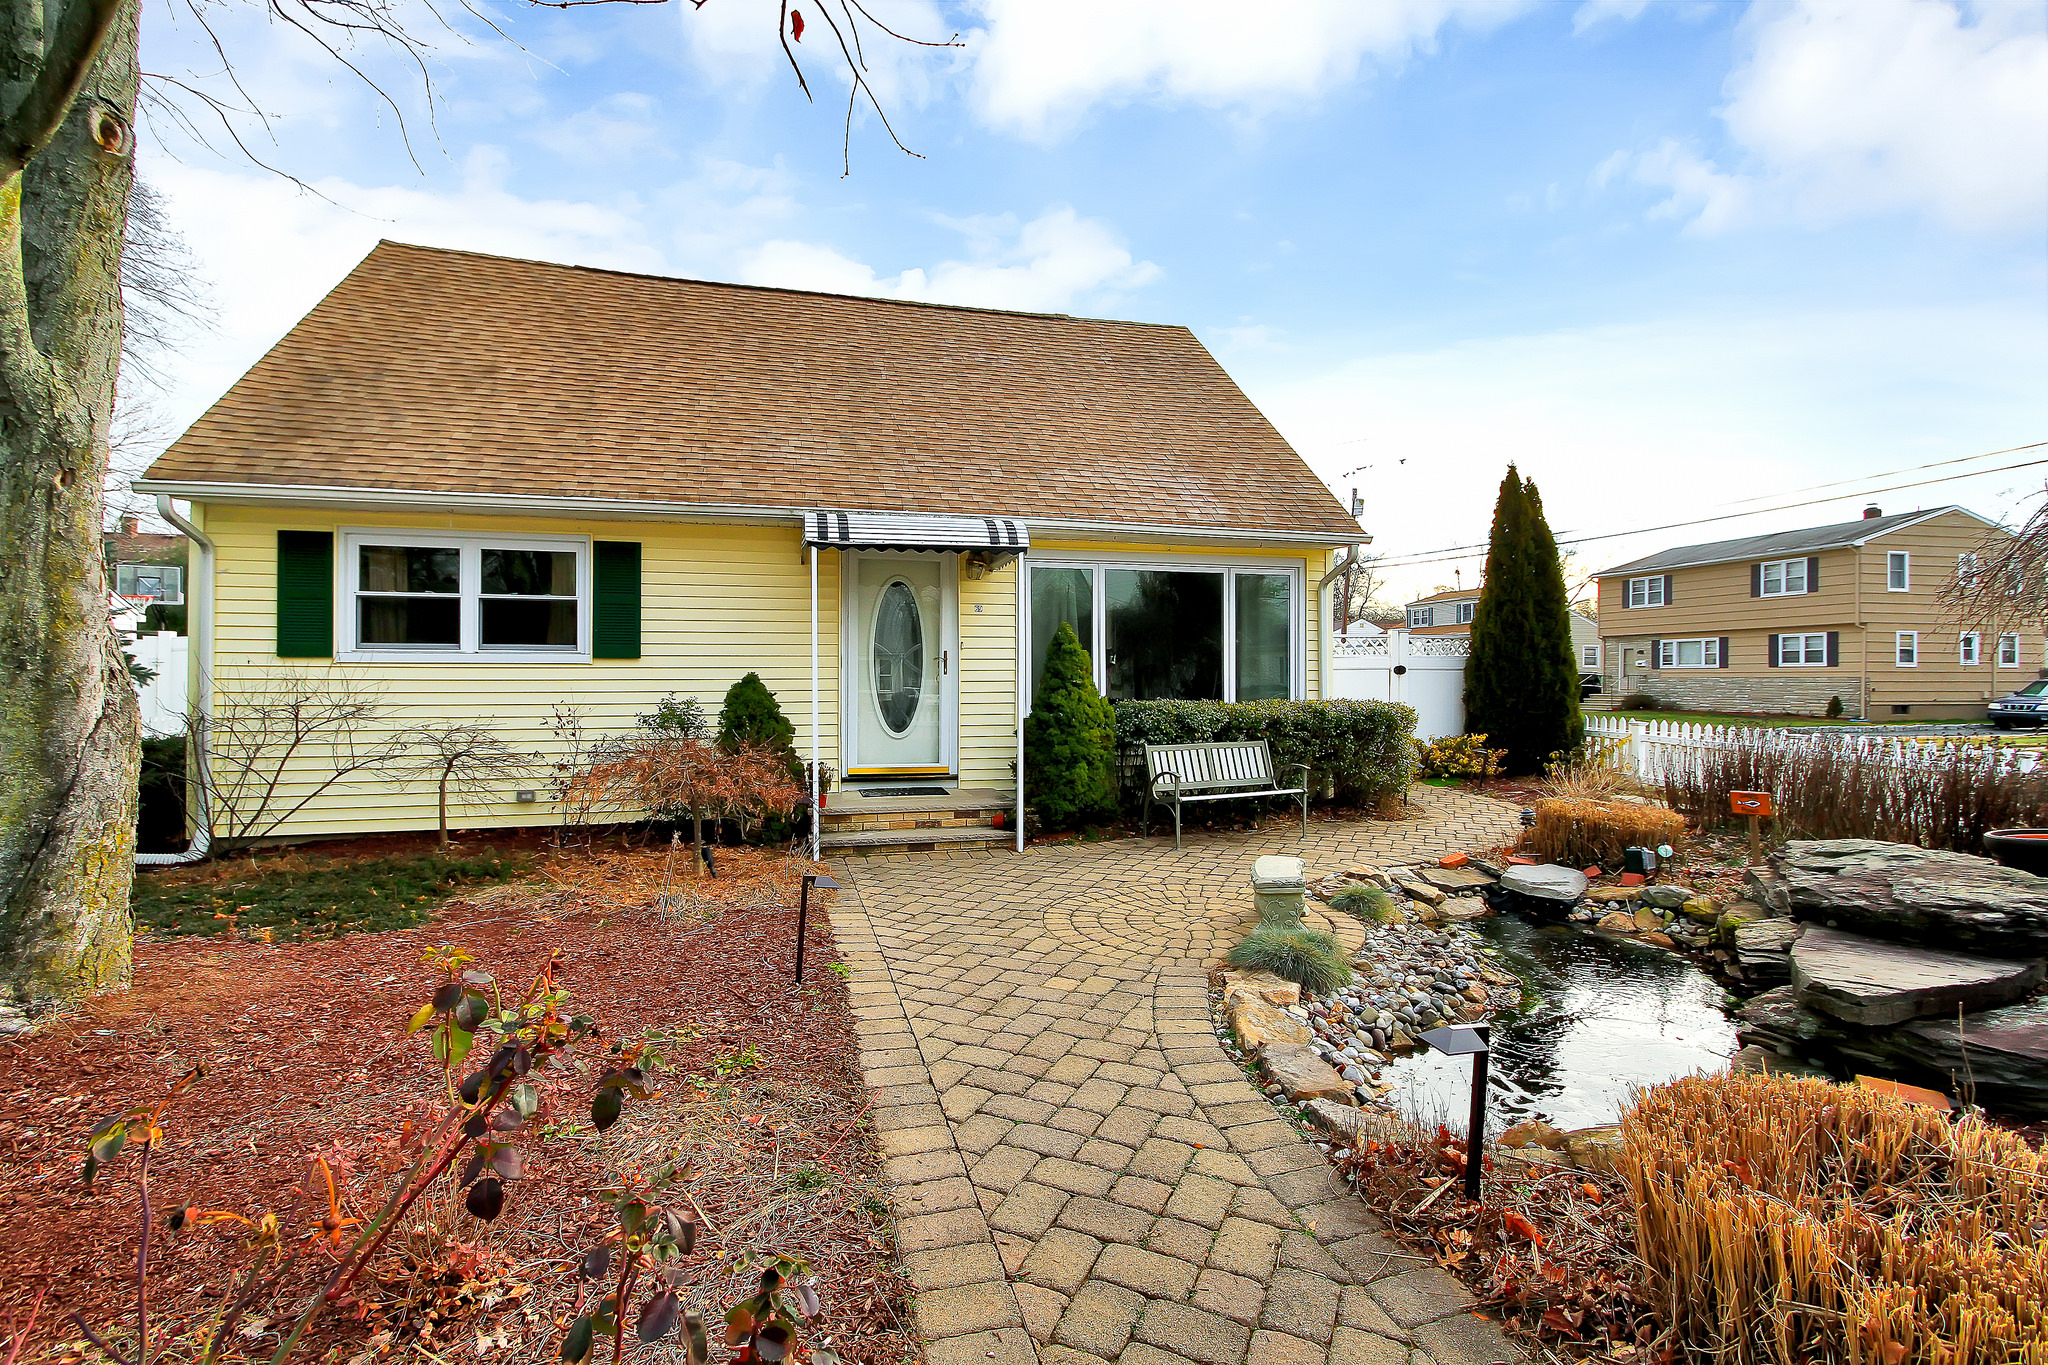 69 Central Ave, Pompton Lakes, New Jersey 07442